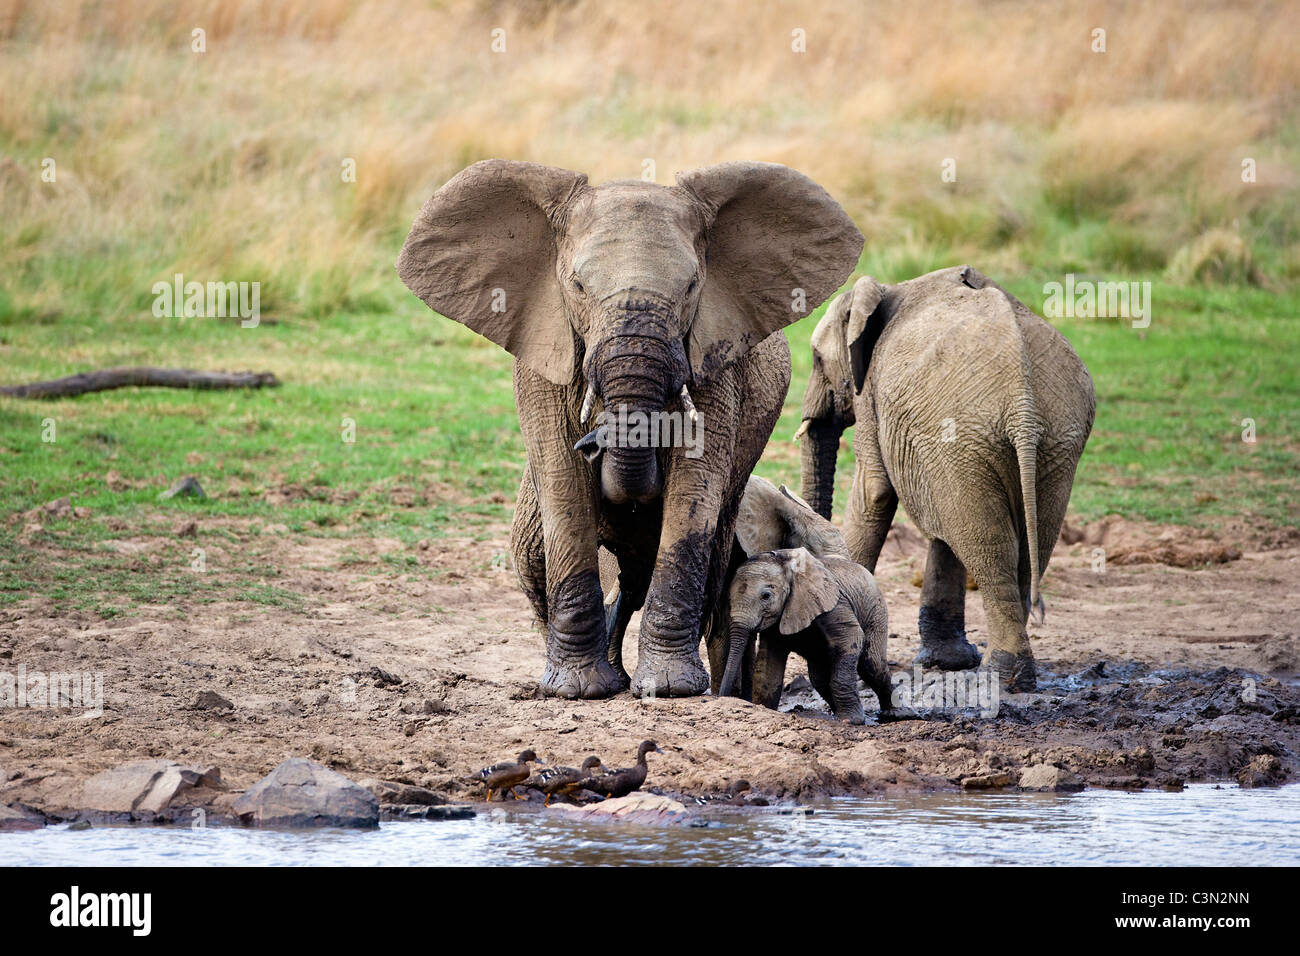 South Africa, near Rustenburg, Pilanesberg National Park. African Elephants, Loxodonta africana. Mothers and young. Stock Photo